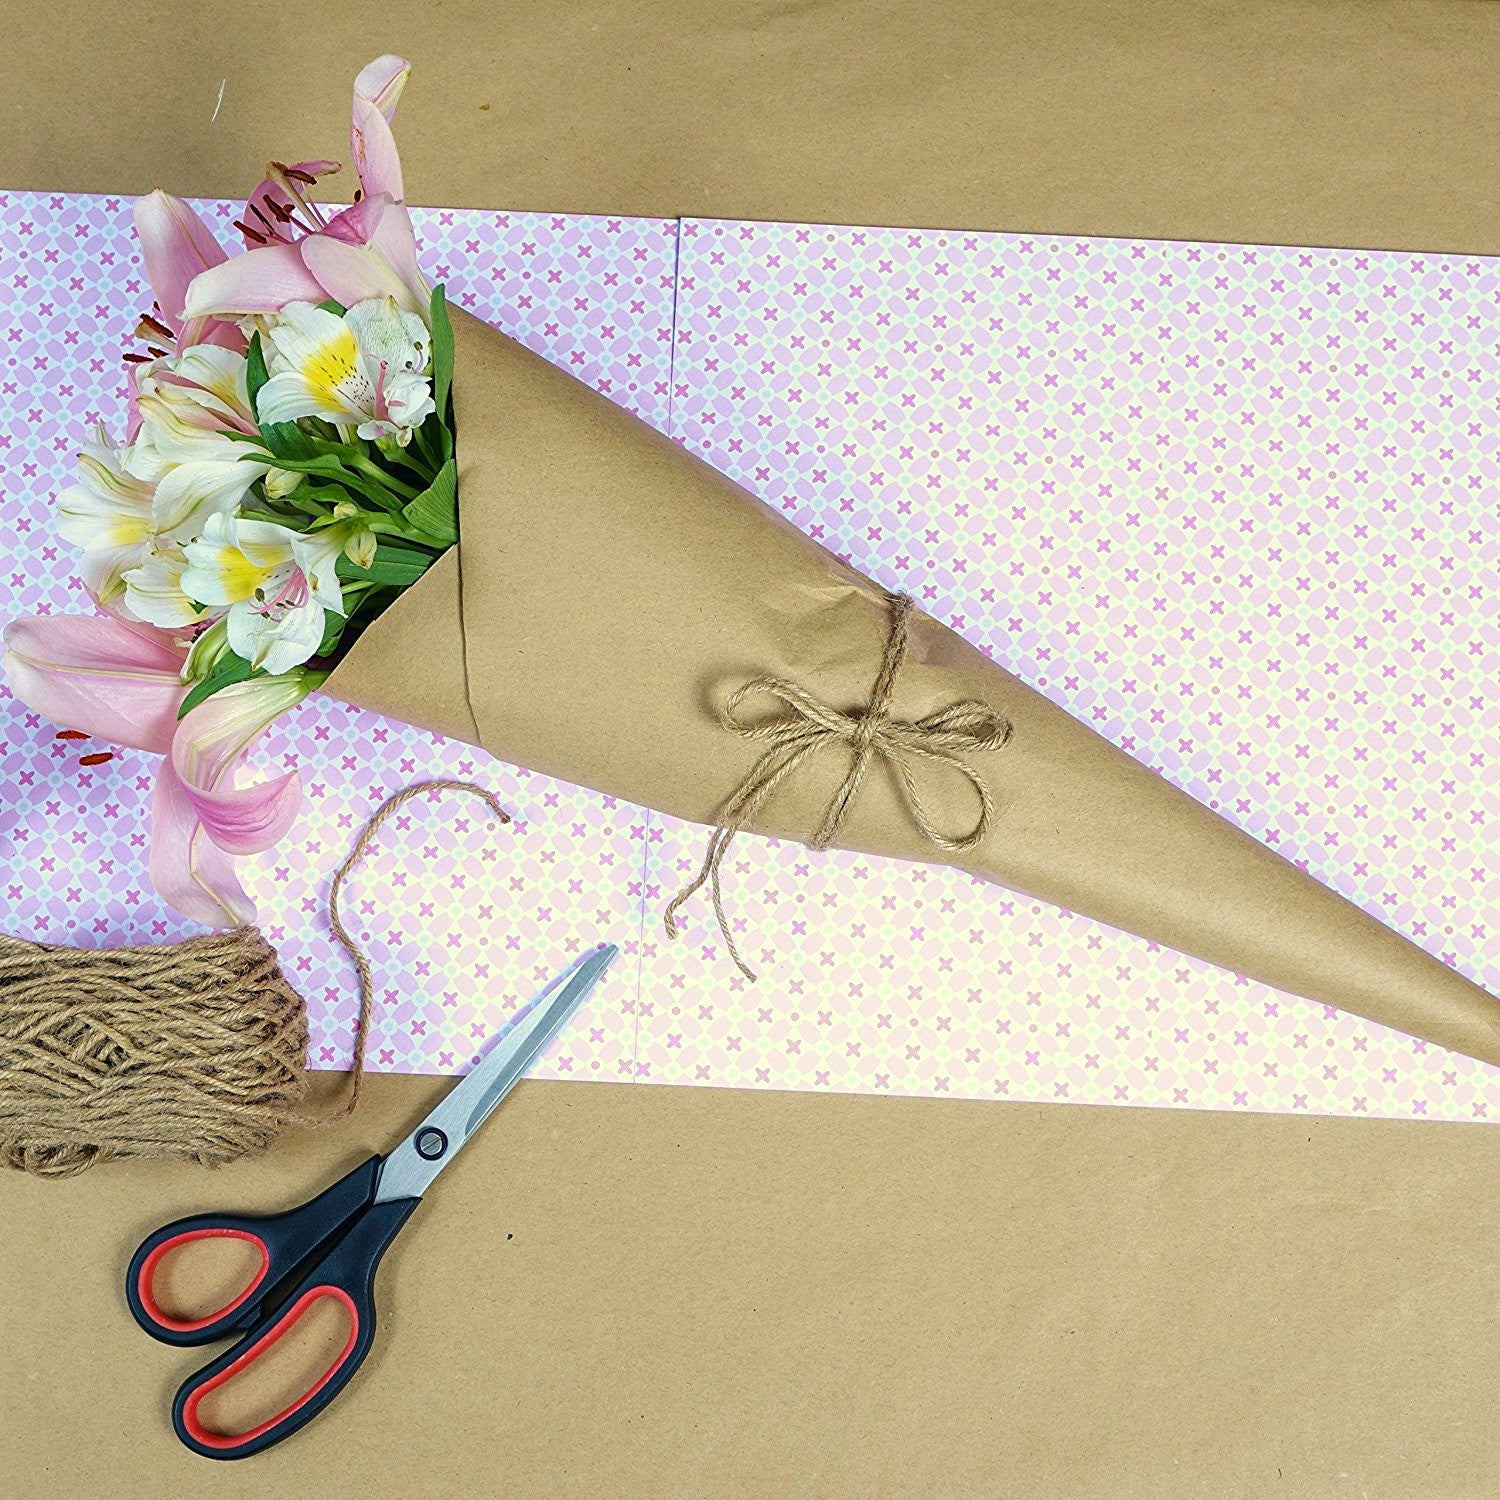 Kraft paper wrapping paper 30x1200 and rope 2400 kraft paper wrapping paper 30x1200 and rope jeuxipadfo Choice Image